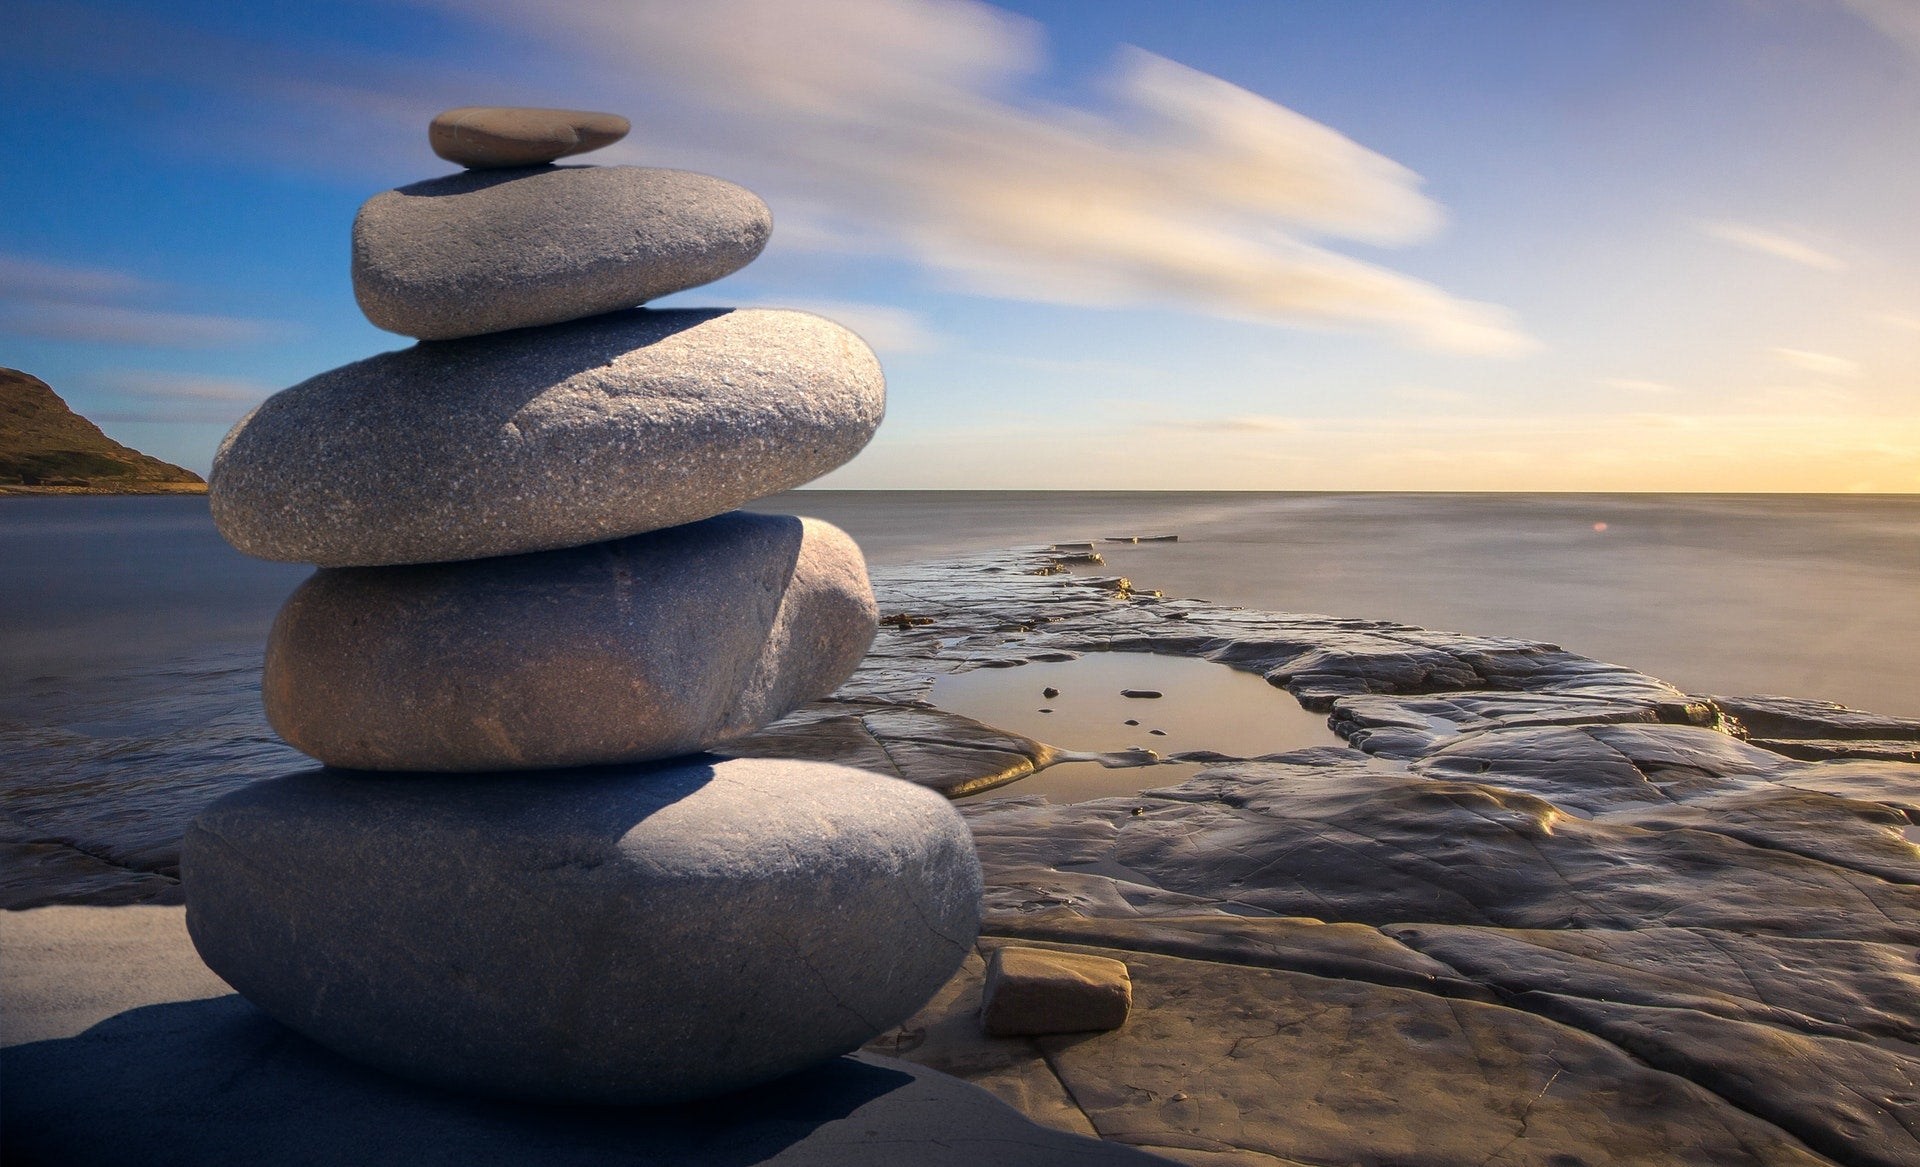 pile of smooth stones on empty beach representing the right mindset